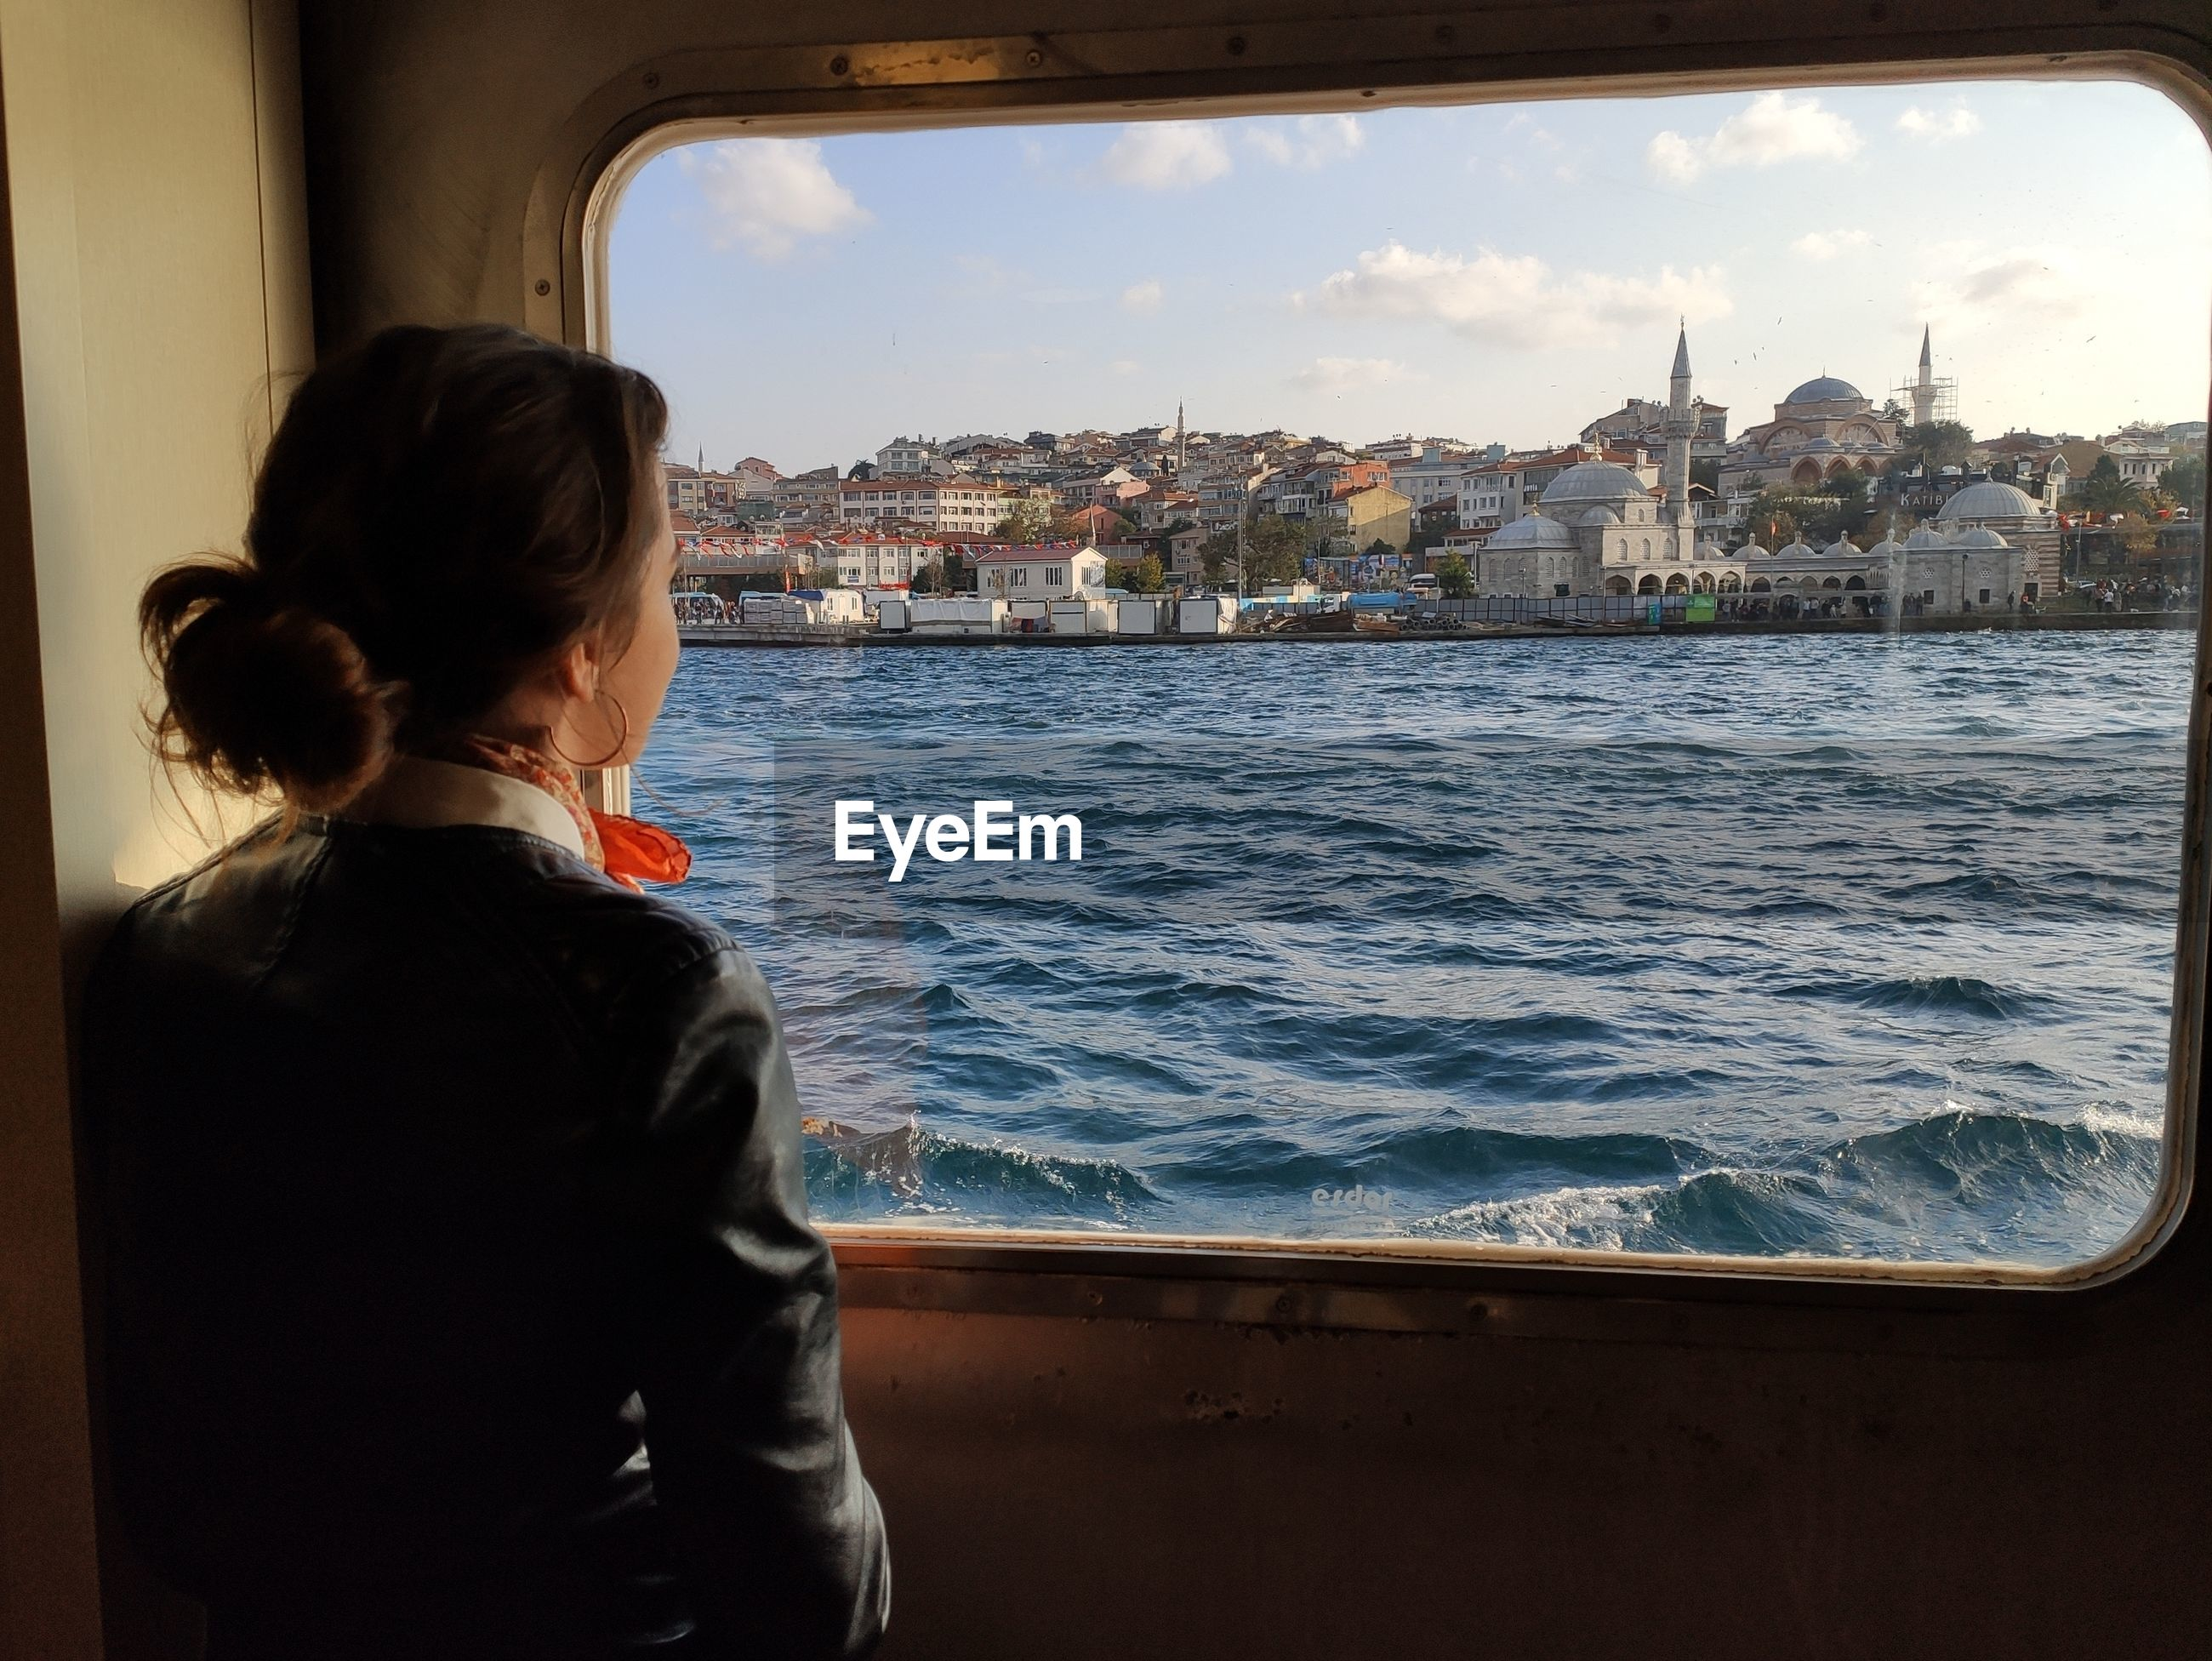 Rear view of woman standing by ferry window in city